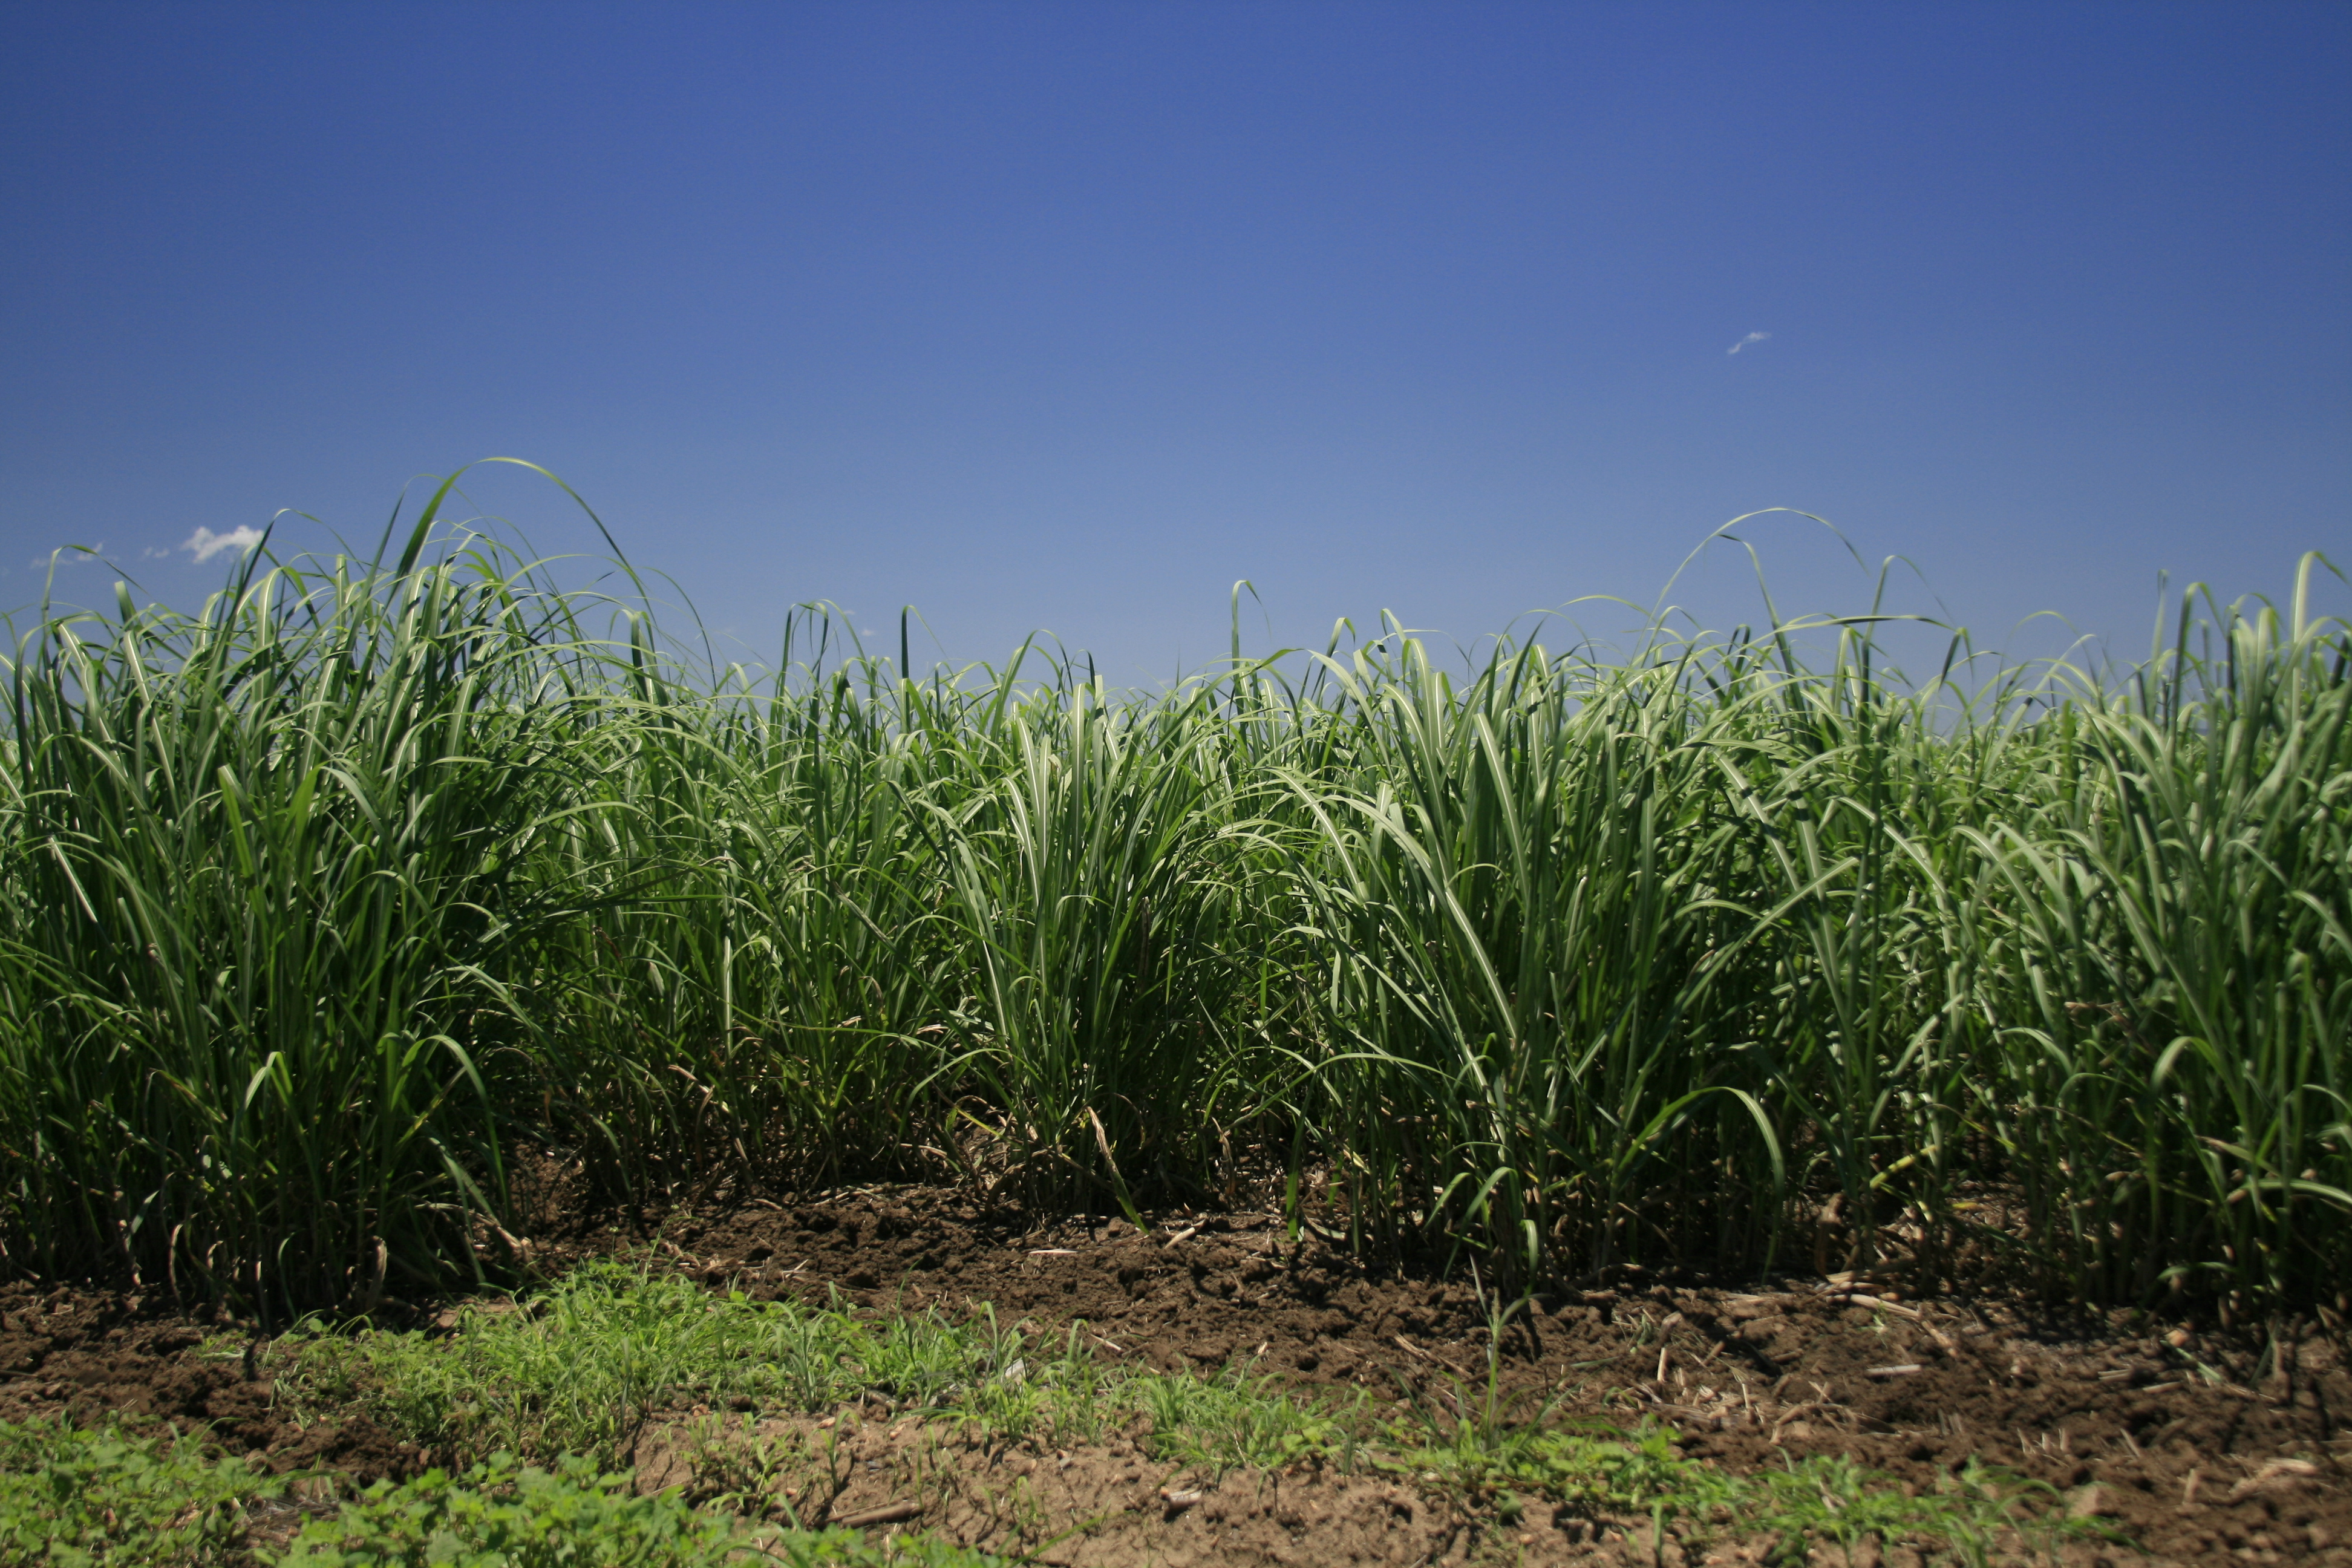 Sugarcane Is A Natural Resource In Which Country